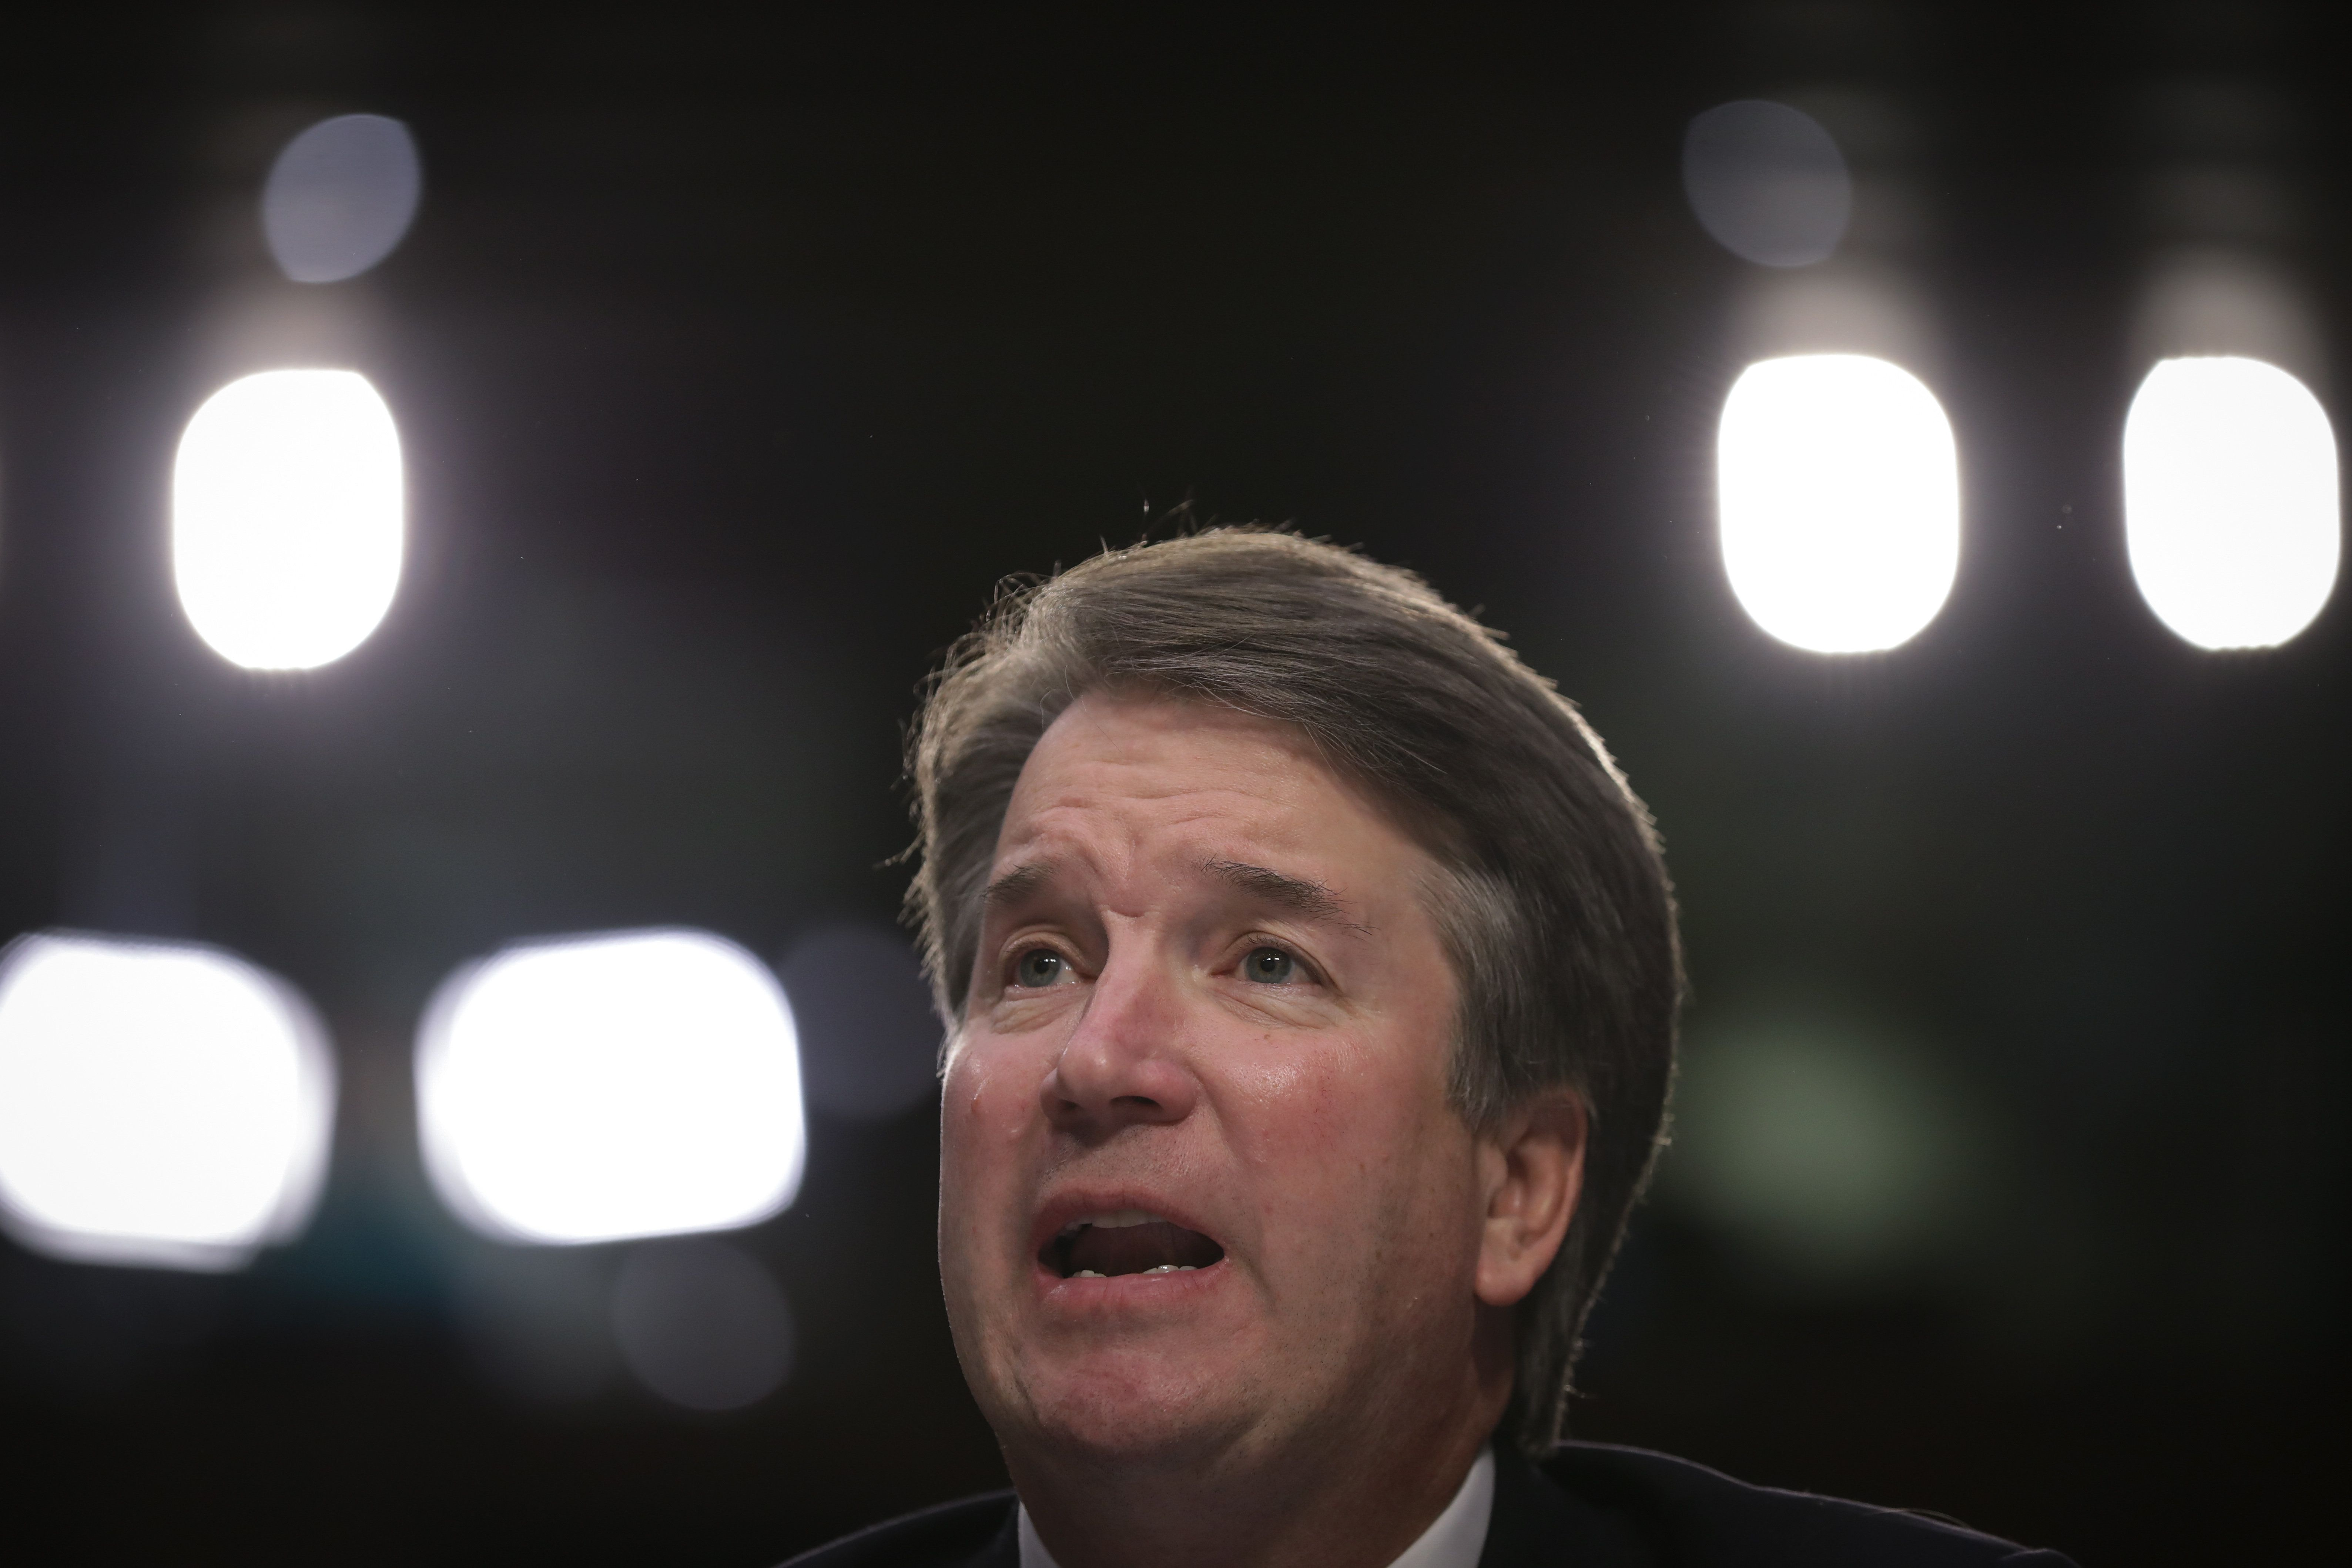 Brett Kavanaugh Accused Of Attempting To Sexually Assault A Woman In High School